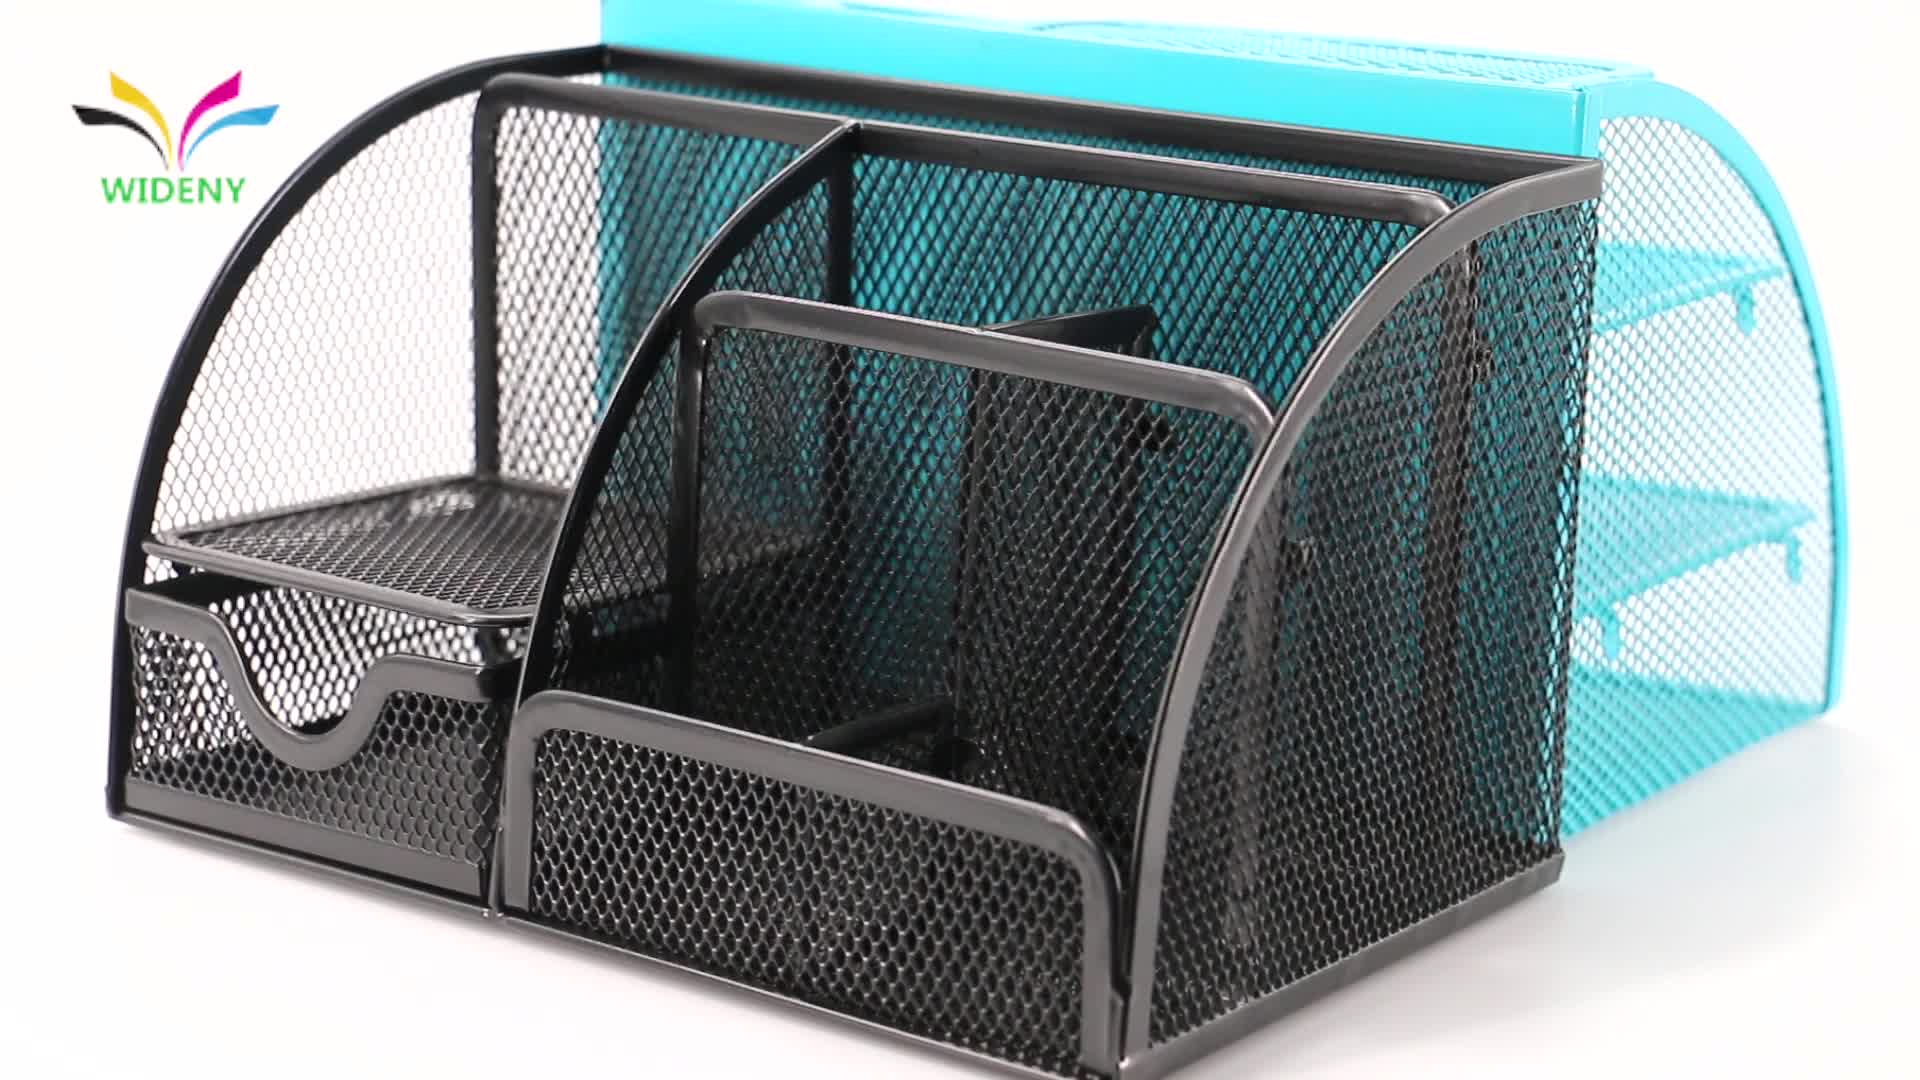 Blue 6 compartments metal mesh office desk metal organizer with drawer